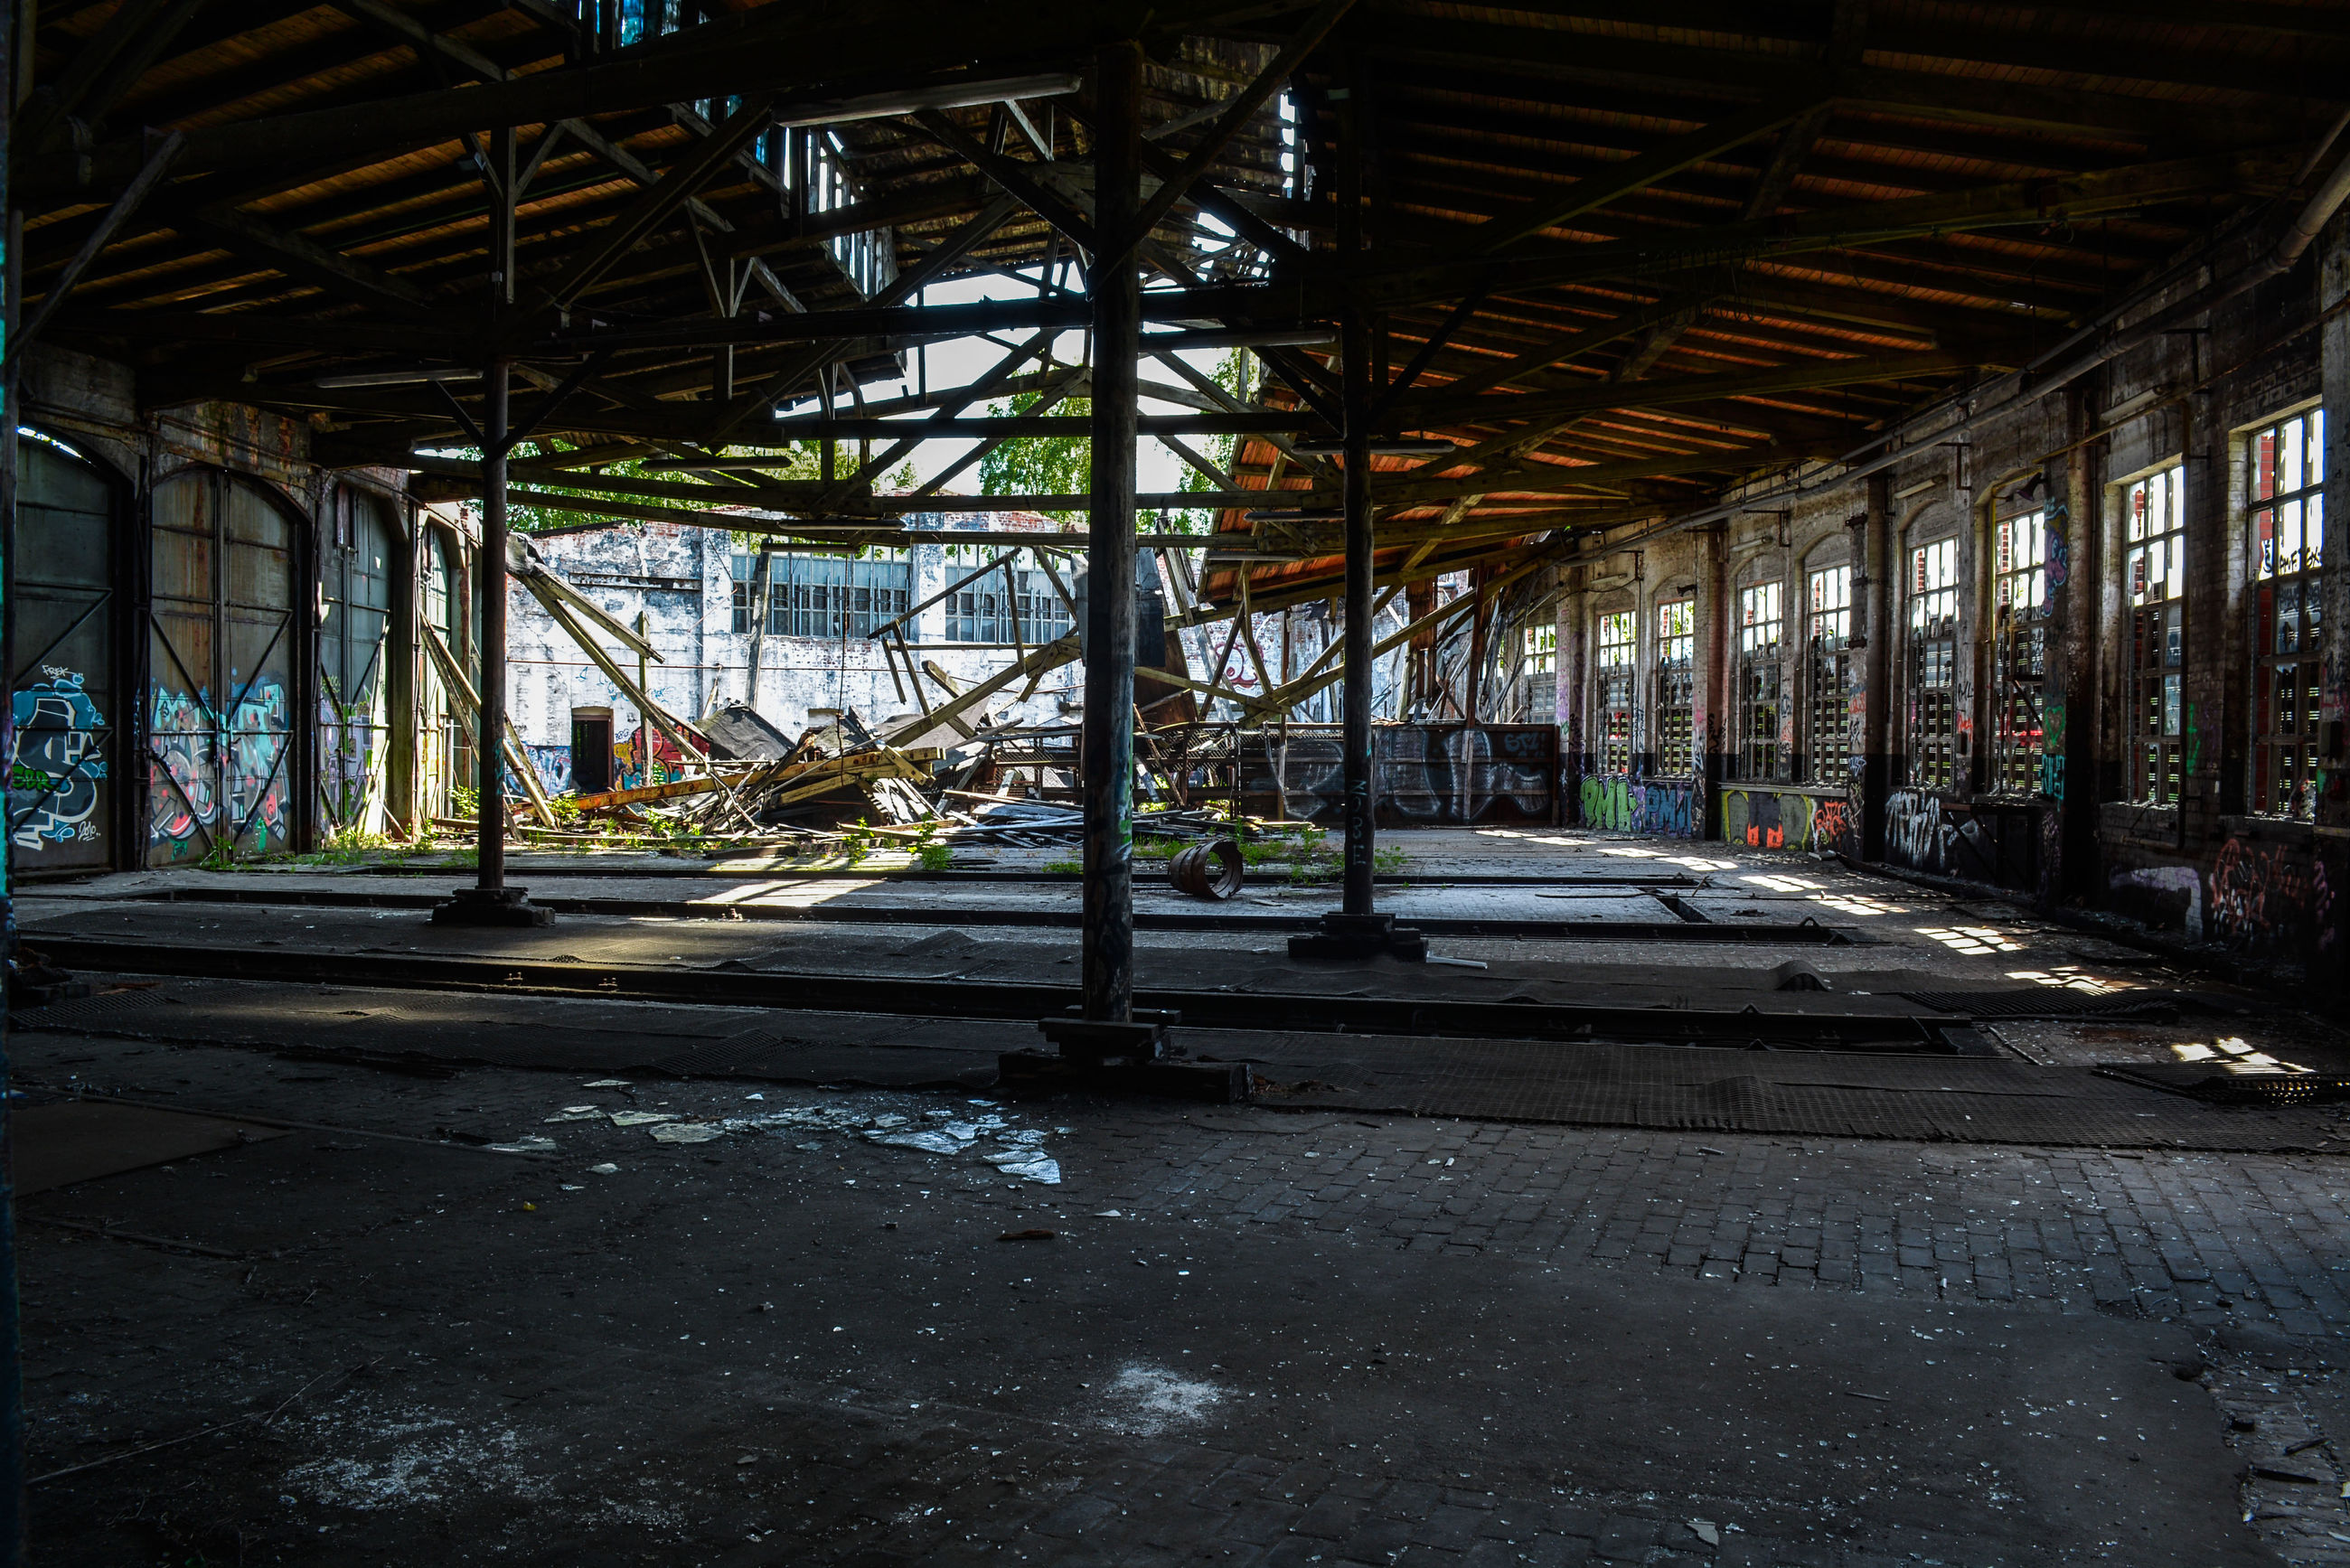 built structure, architecture, indoors, abandoned, obsolete, graffiti, metal, damaged, architectural column, run-down, interior, empty, sunlight, day, deterioration, old, ceiling, window, transportation, the way forward